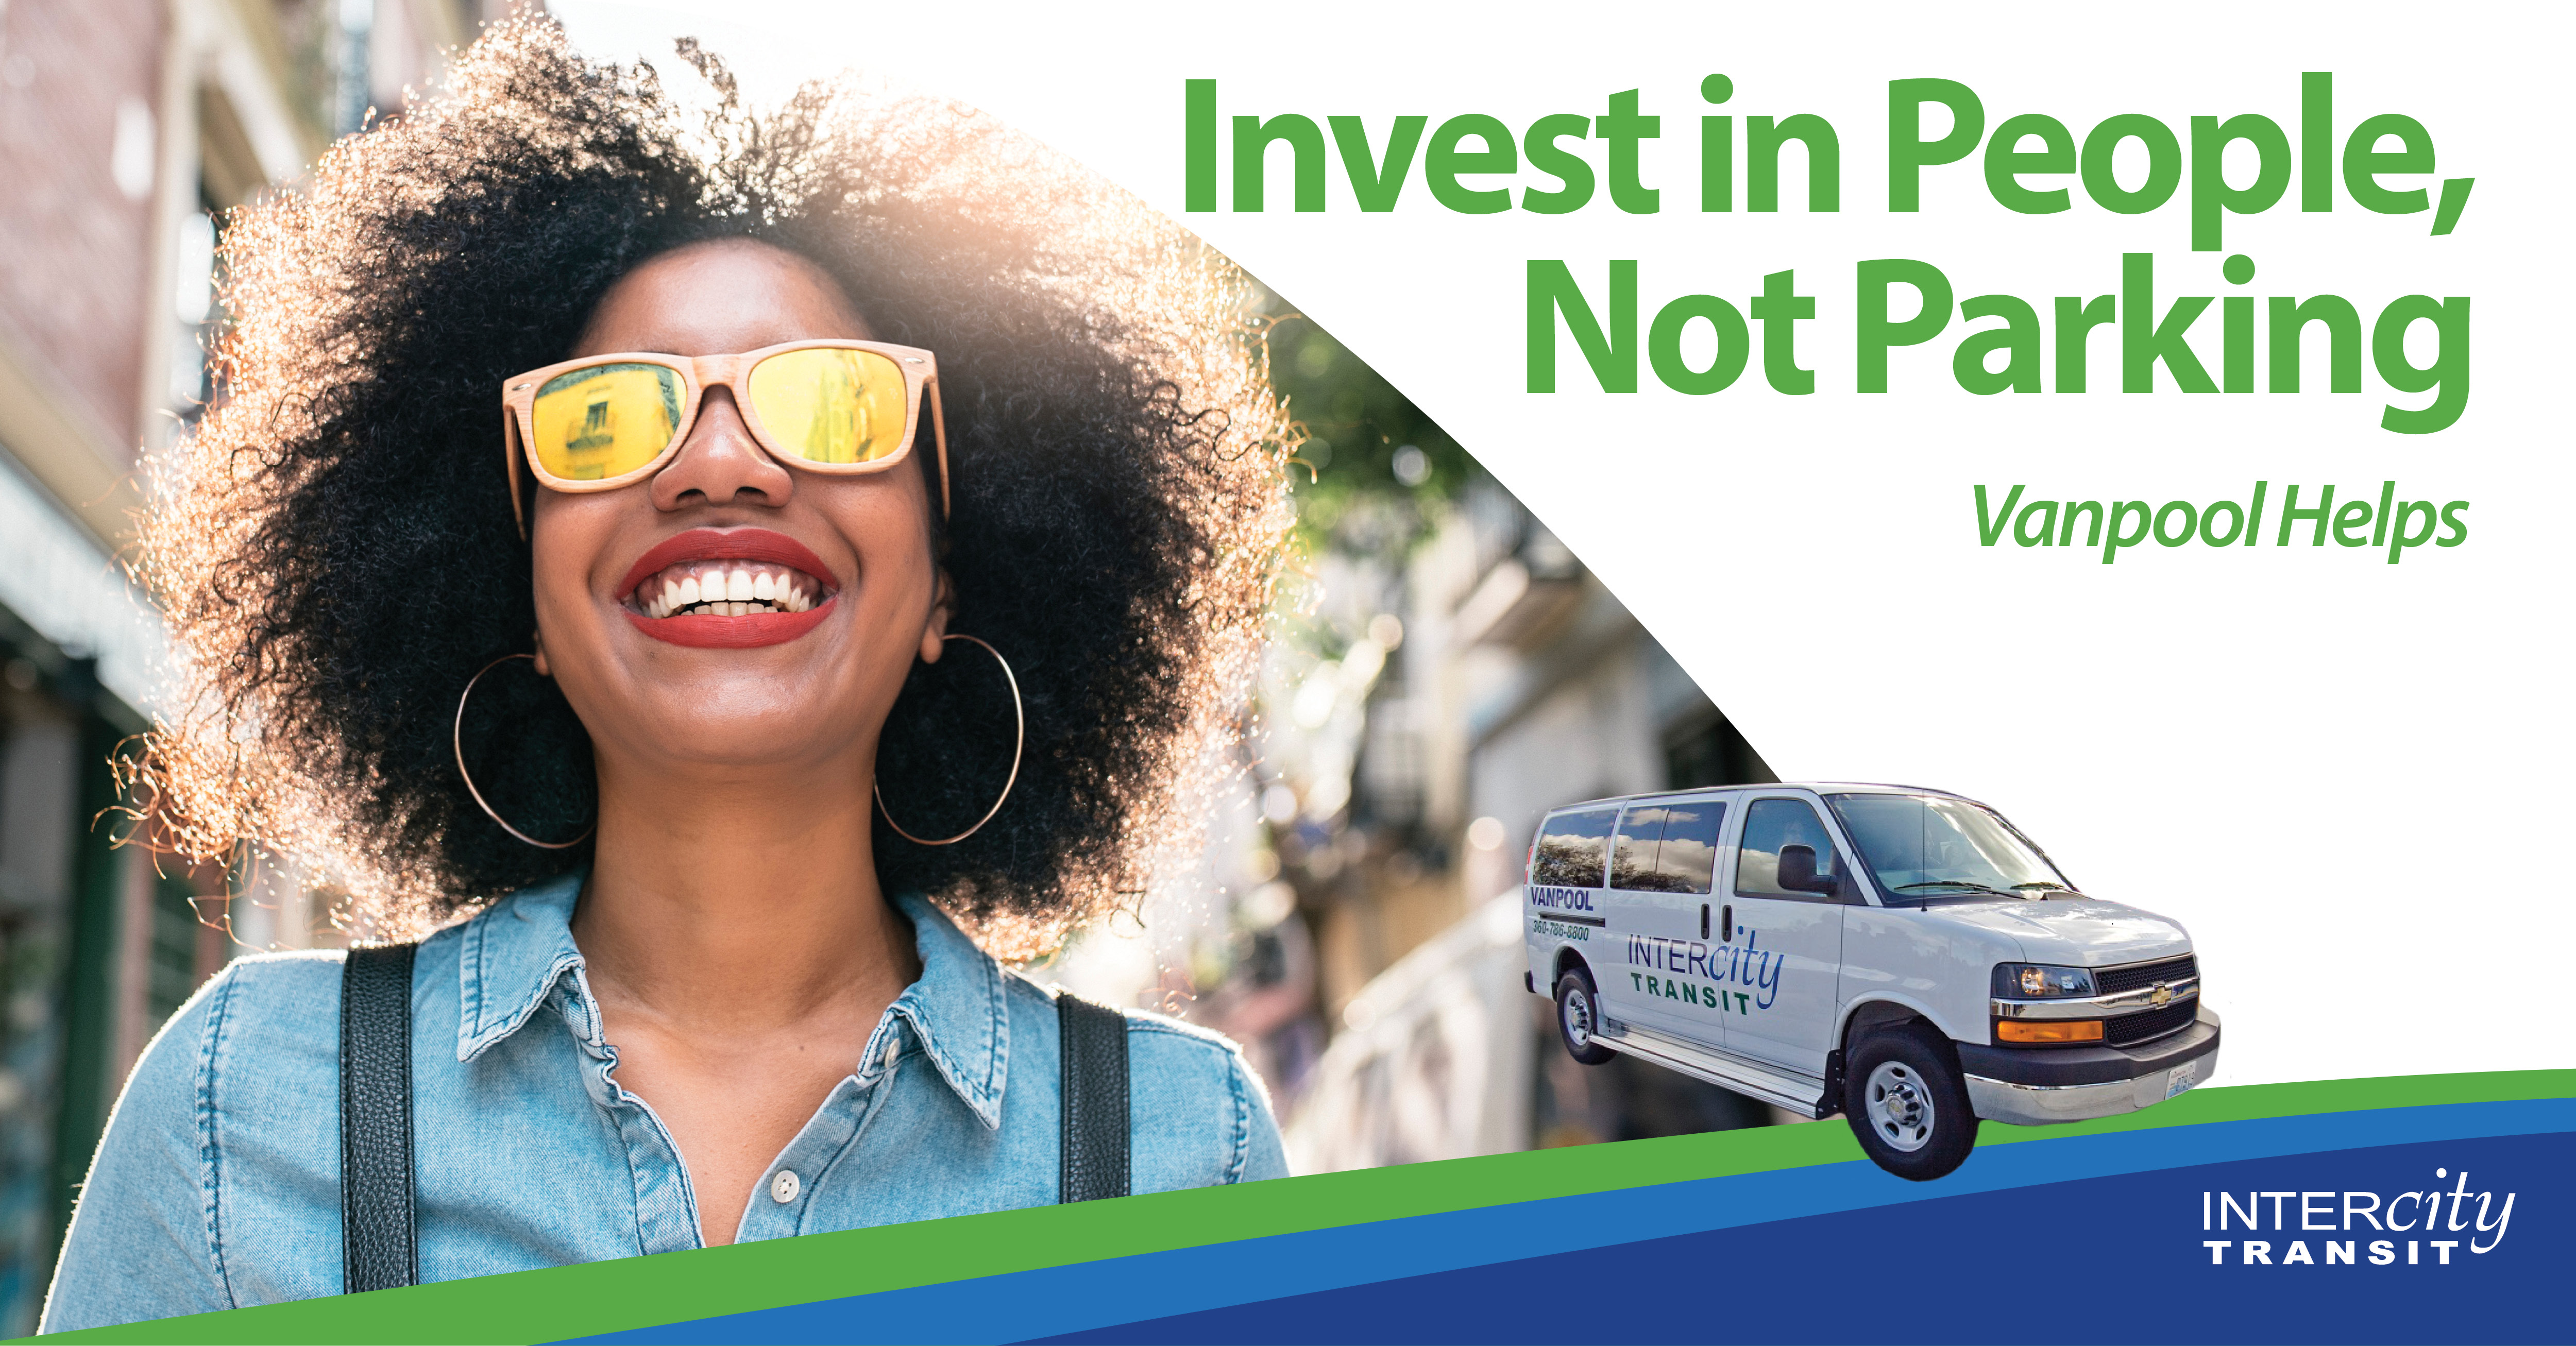 Invest in People, Not Parking - Vanpool helps